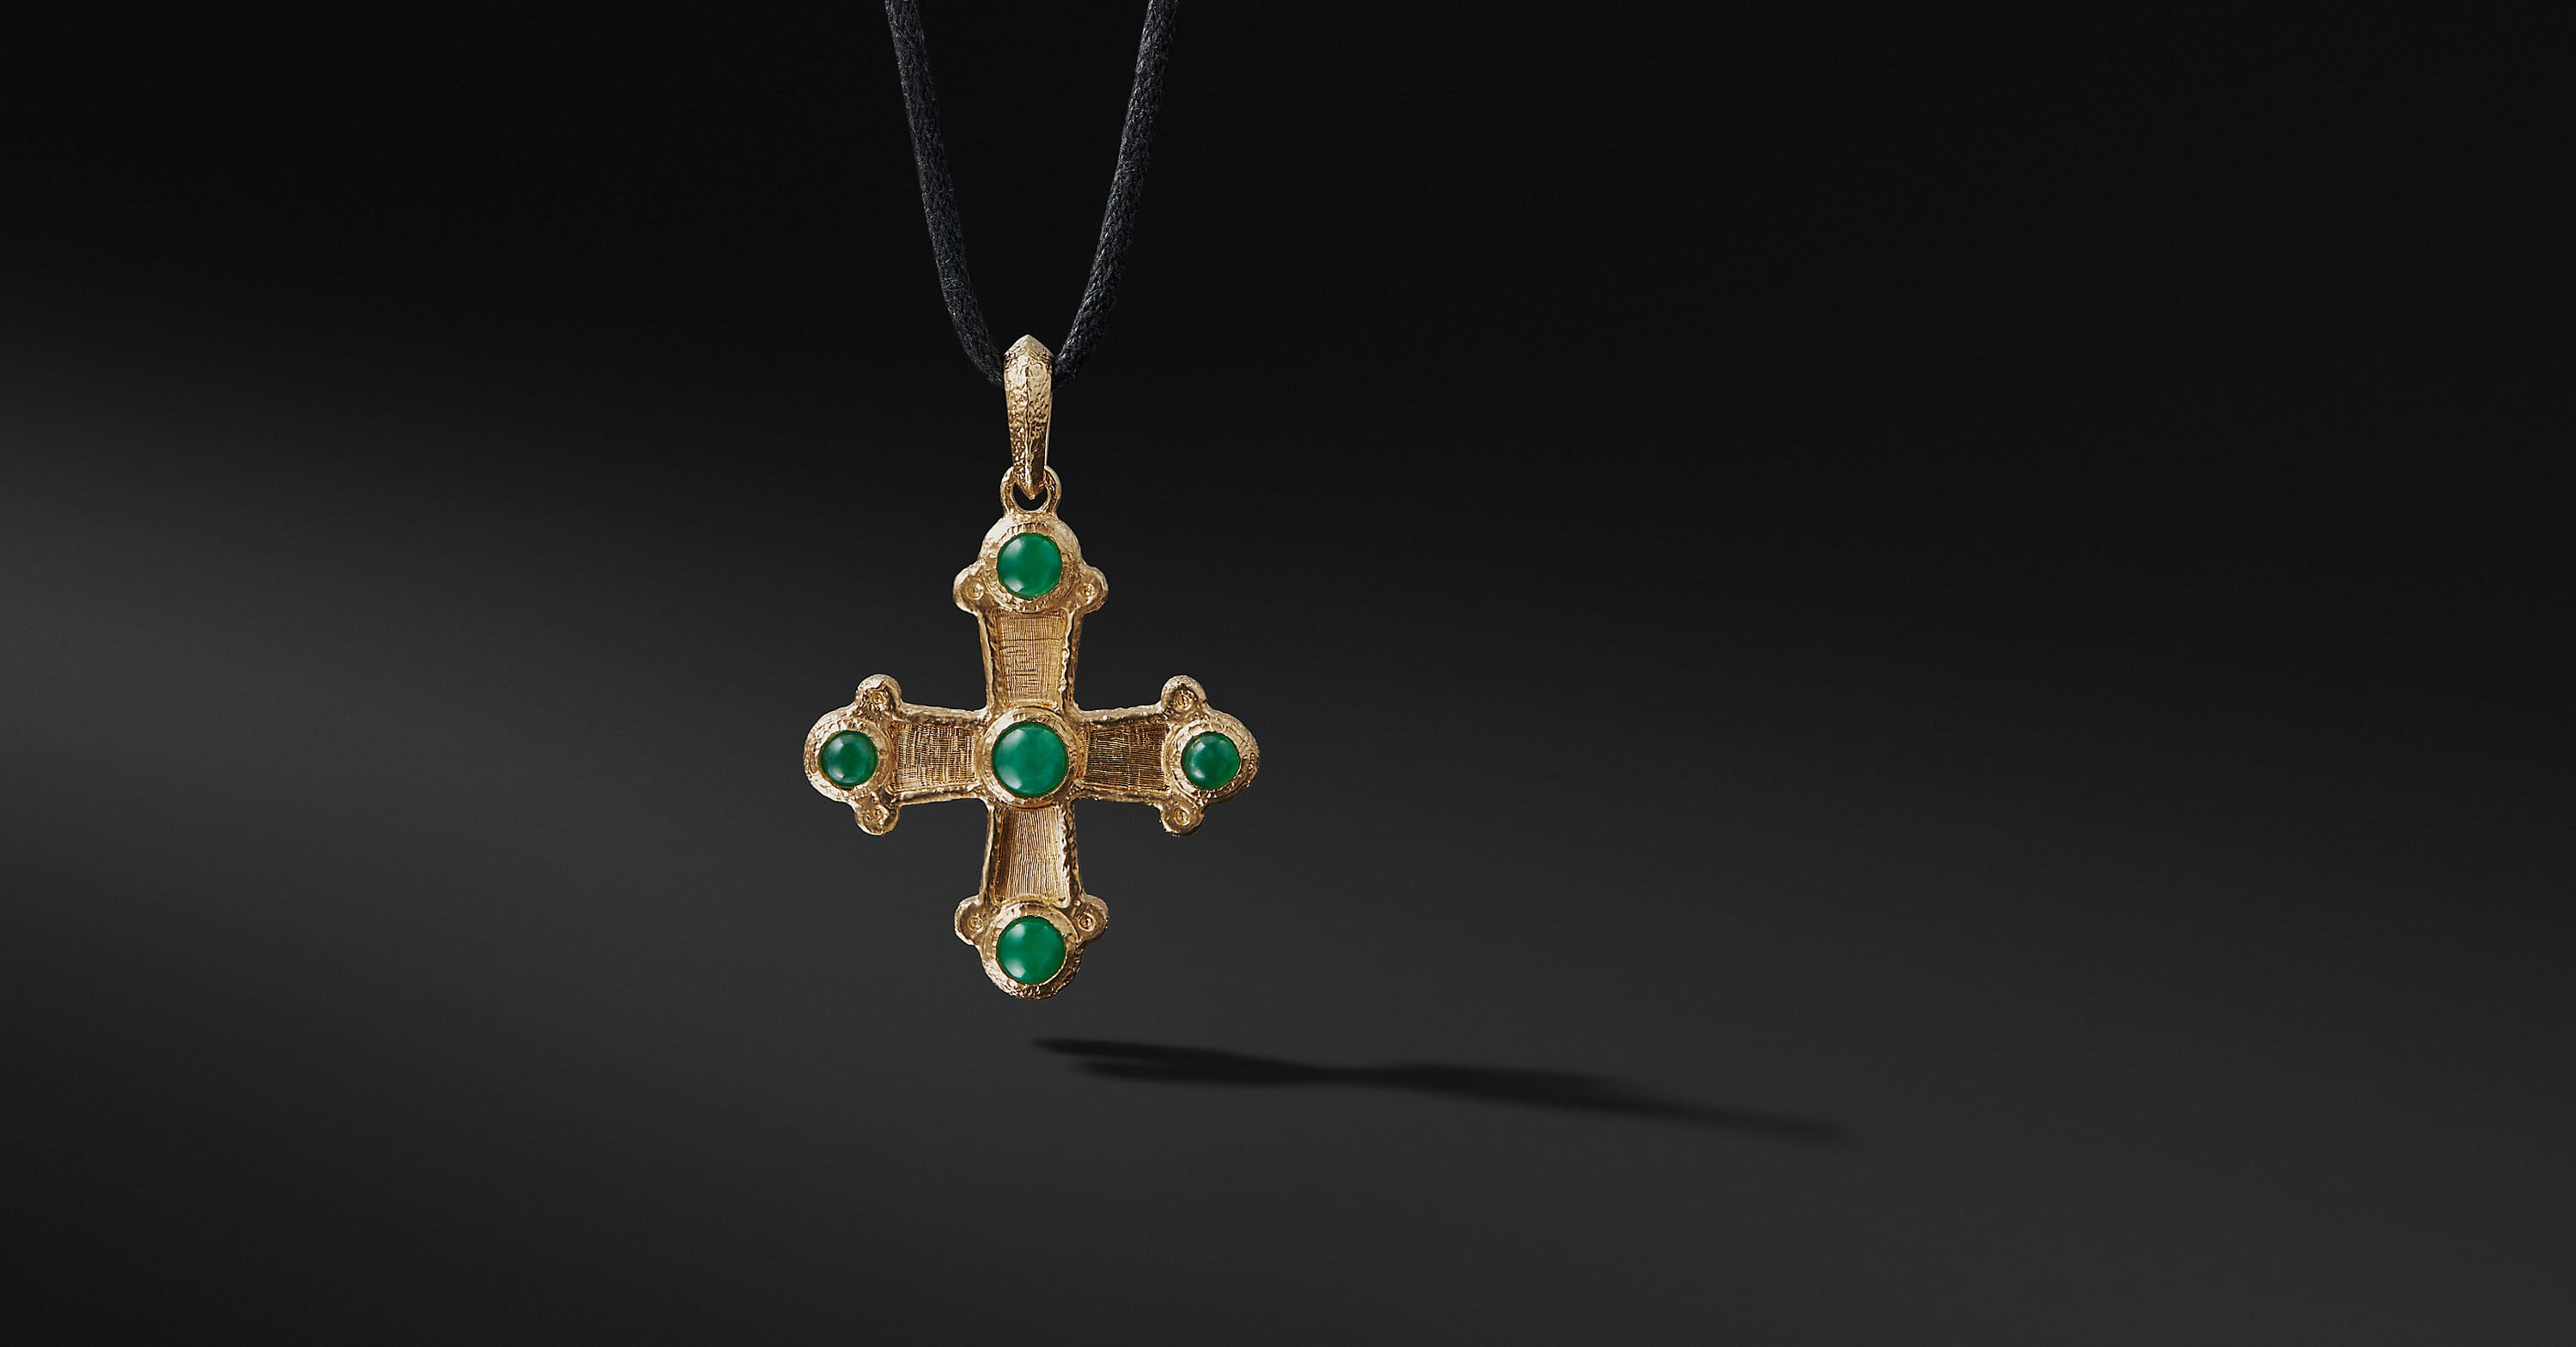 Shipwreck Cross Necklace in 22K Gold